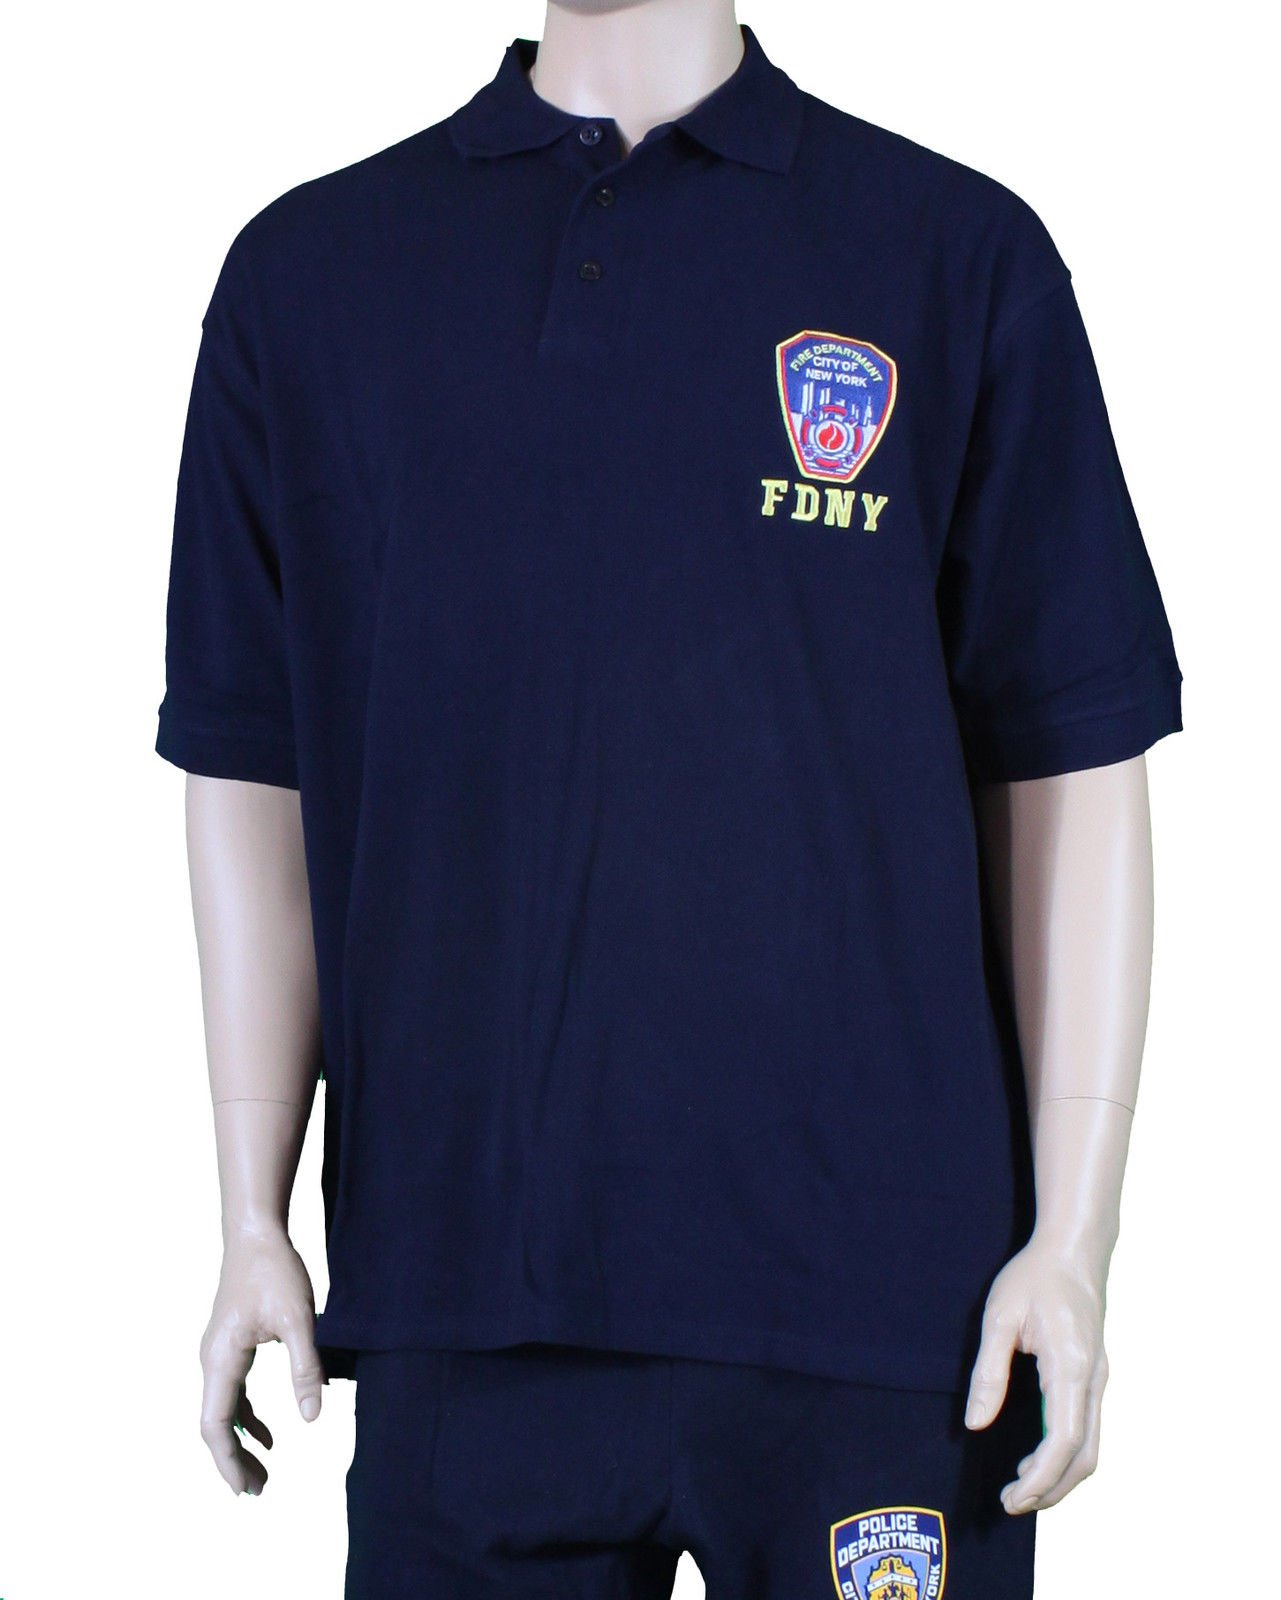 FDNY T-Shirt Polo Officially Licensed by The New York City Fire Department